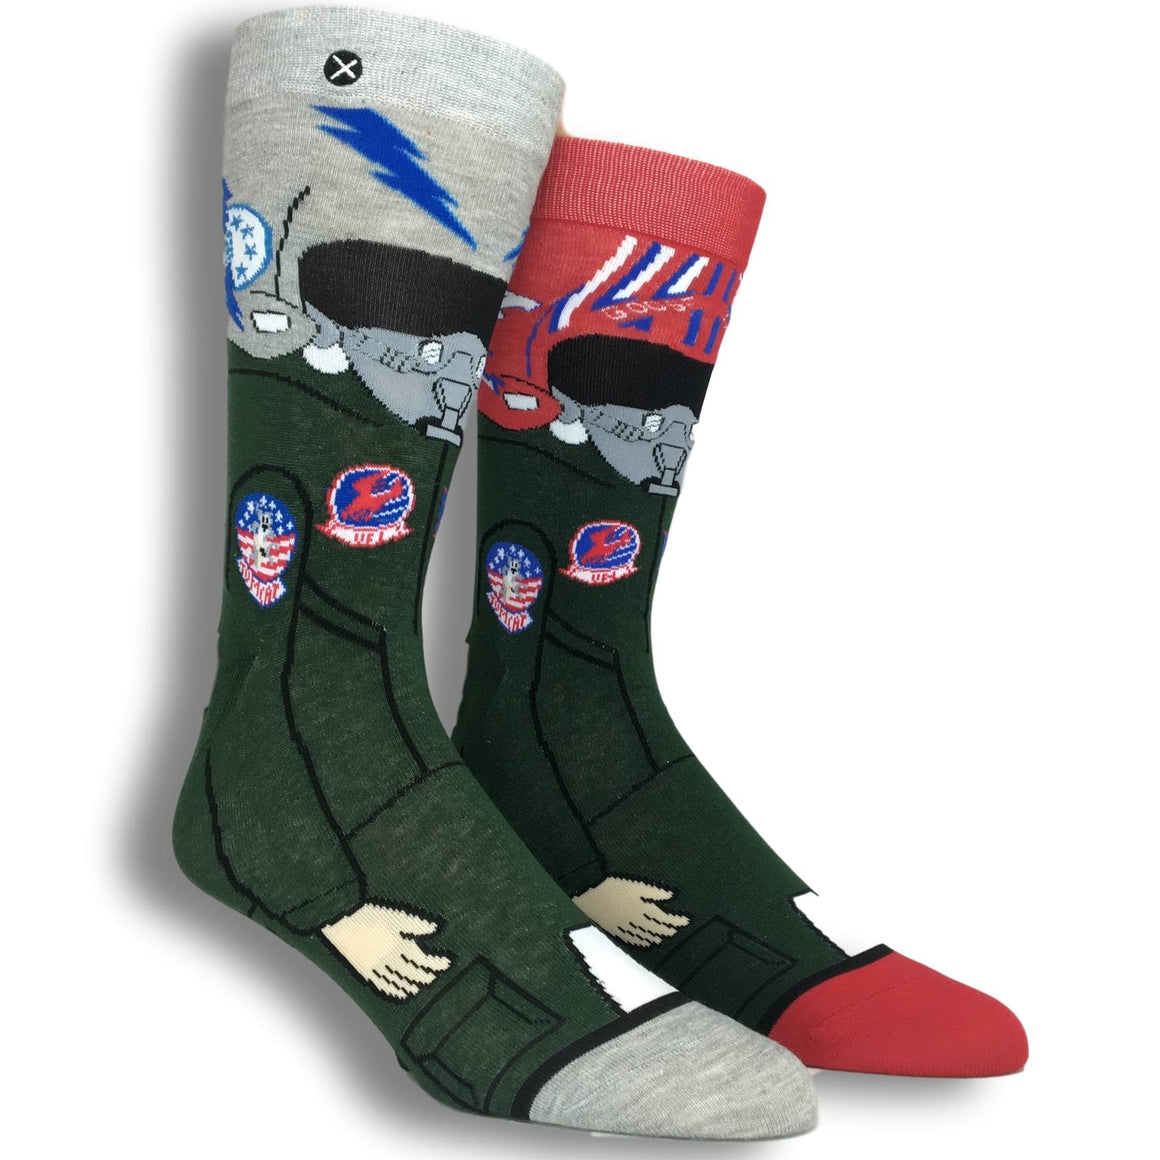 Socks - Top Gun Wingmen 360 Socks